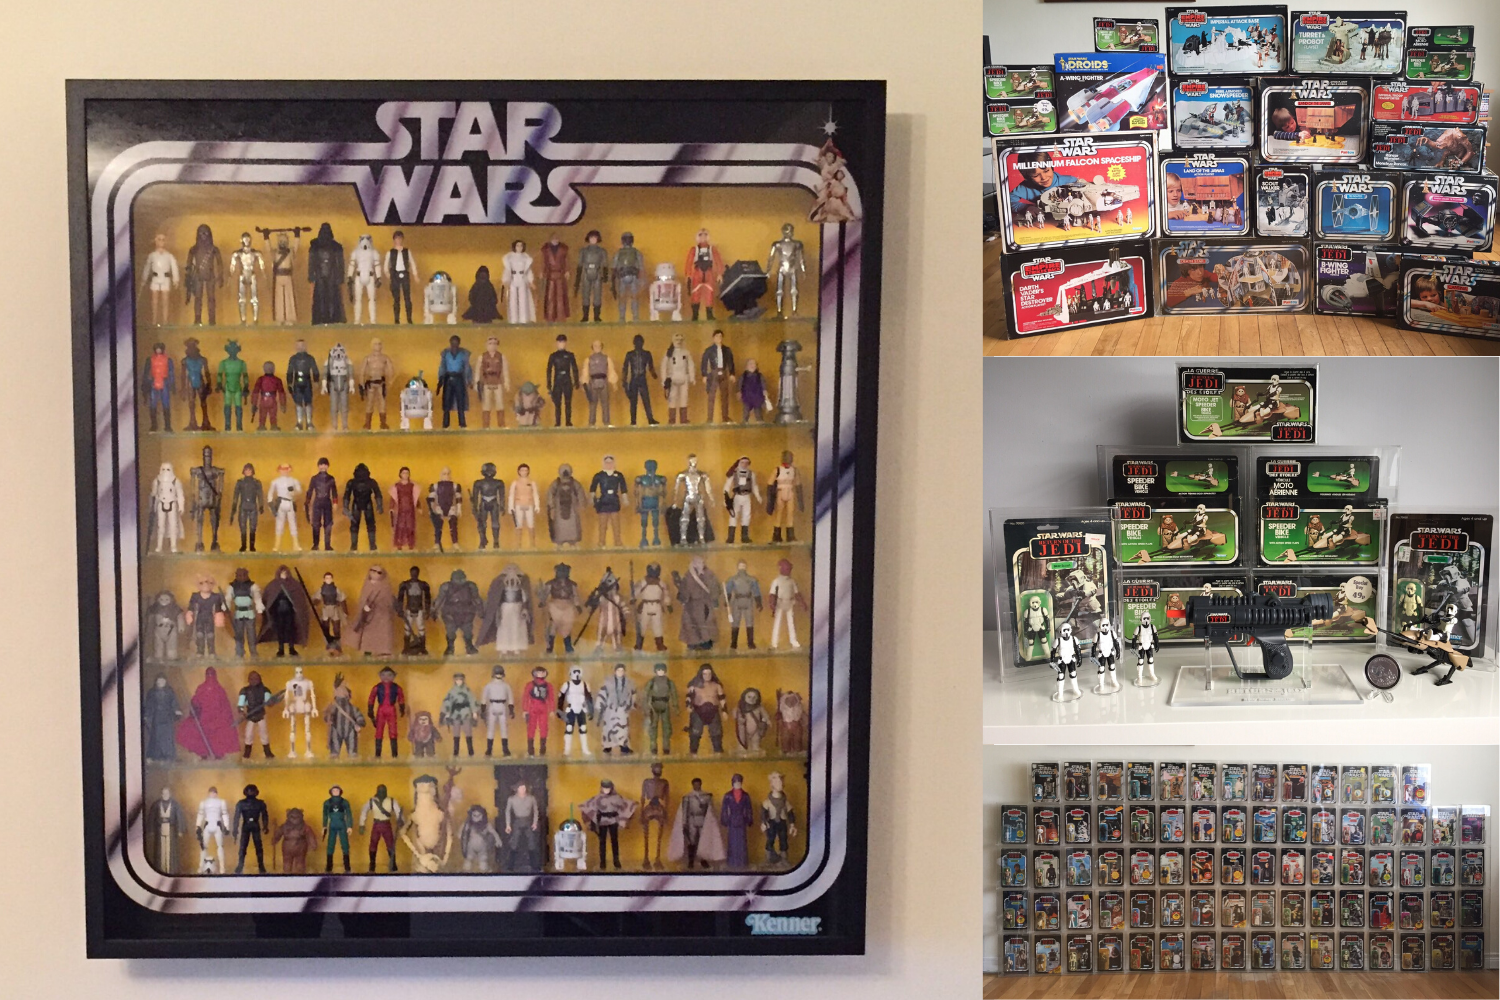 Mark Jackson, Vintage Star Wars collector